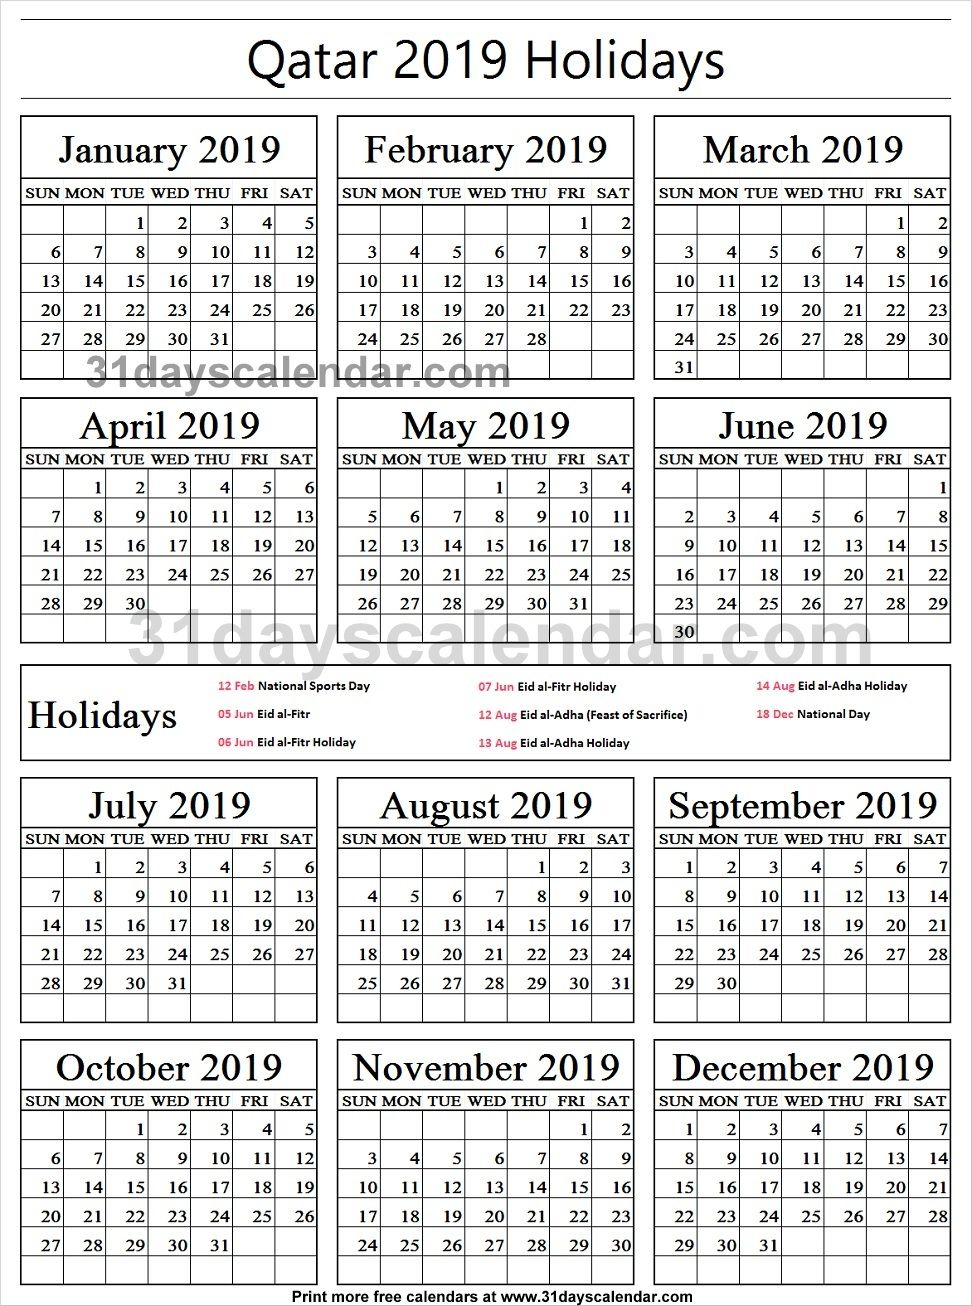 Qatar National Holidays 2019 Calendar With Images Philippine